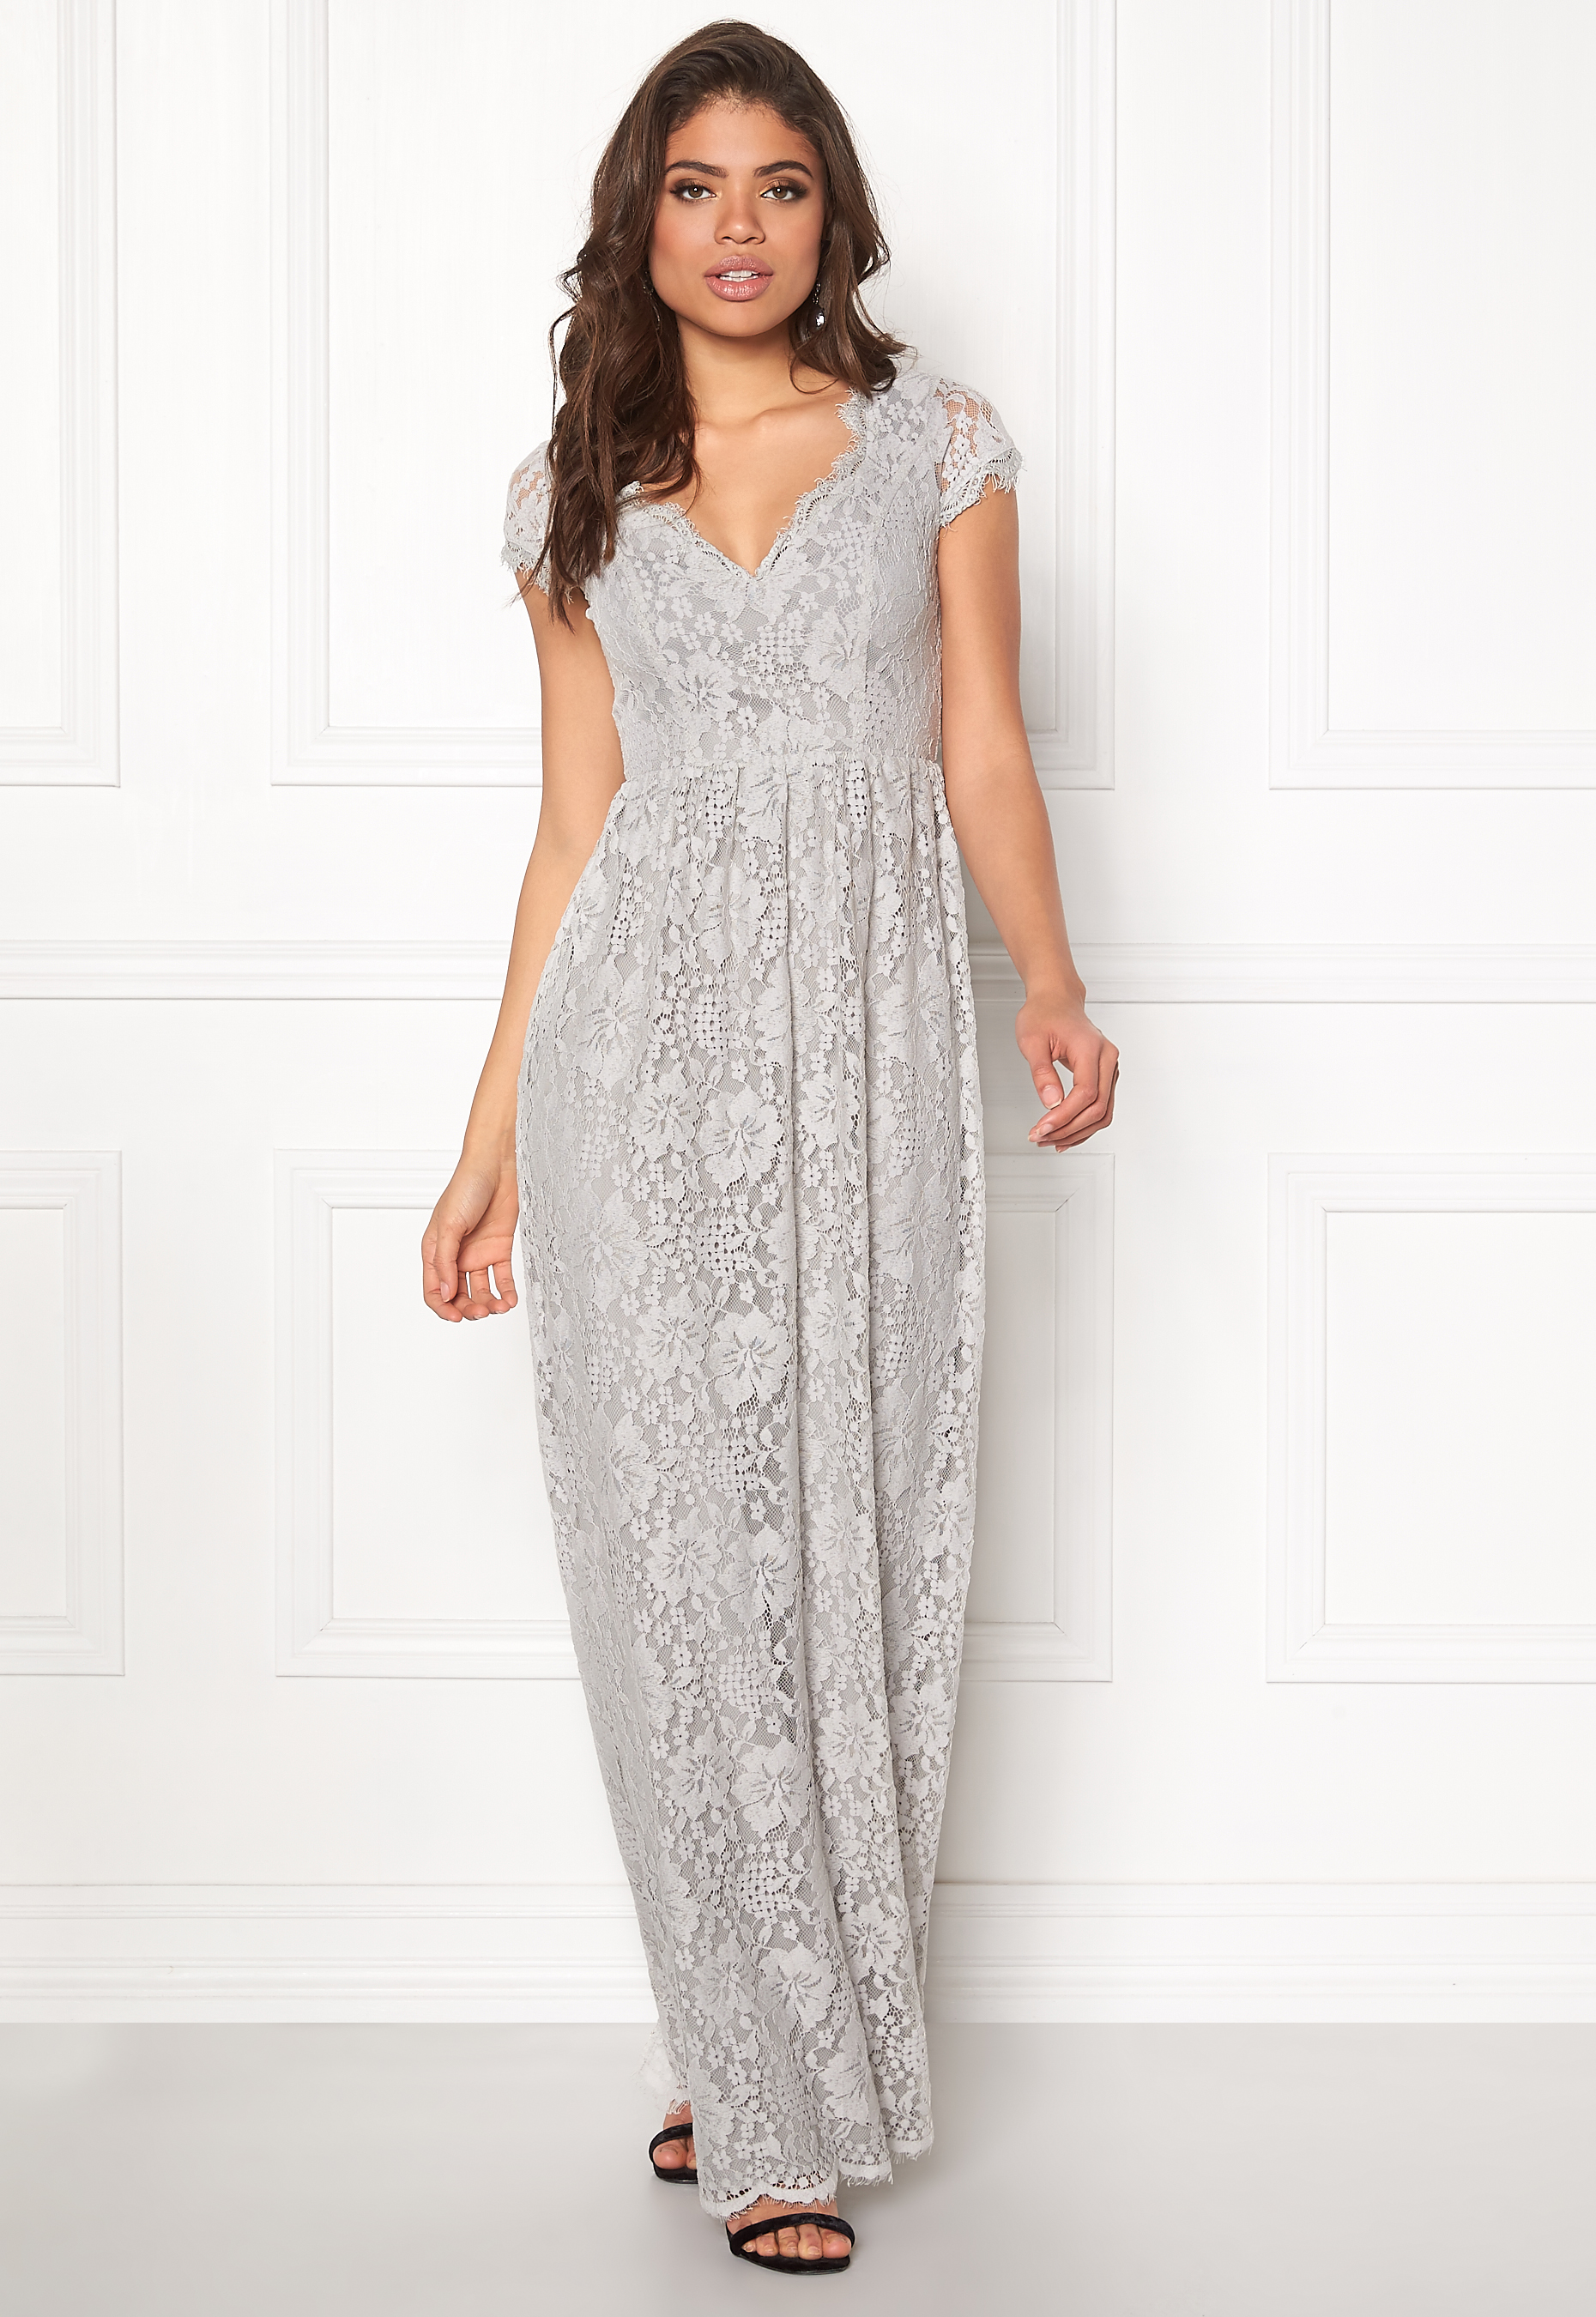 8318ae1bf560 DRY LAKE Summer Date Long Dress Grey Lace - Bubbleroom